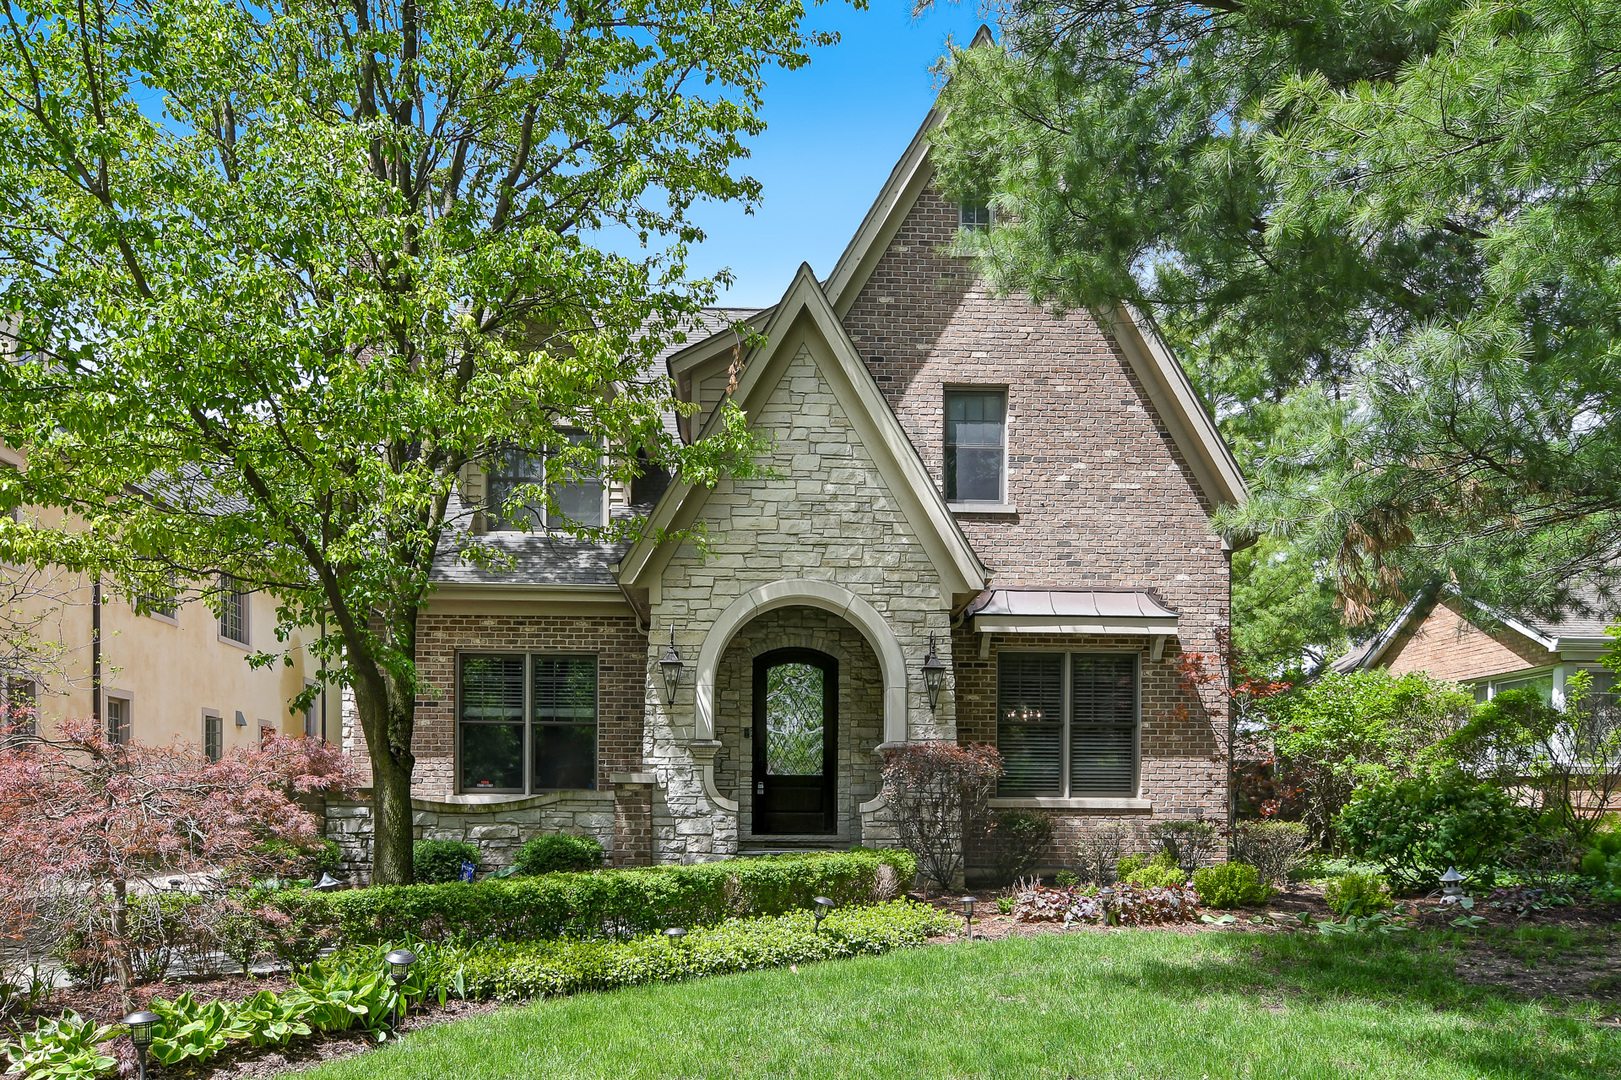 5628 Washington ,Hinsdale, Illinois 60521